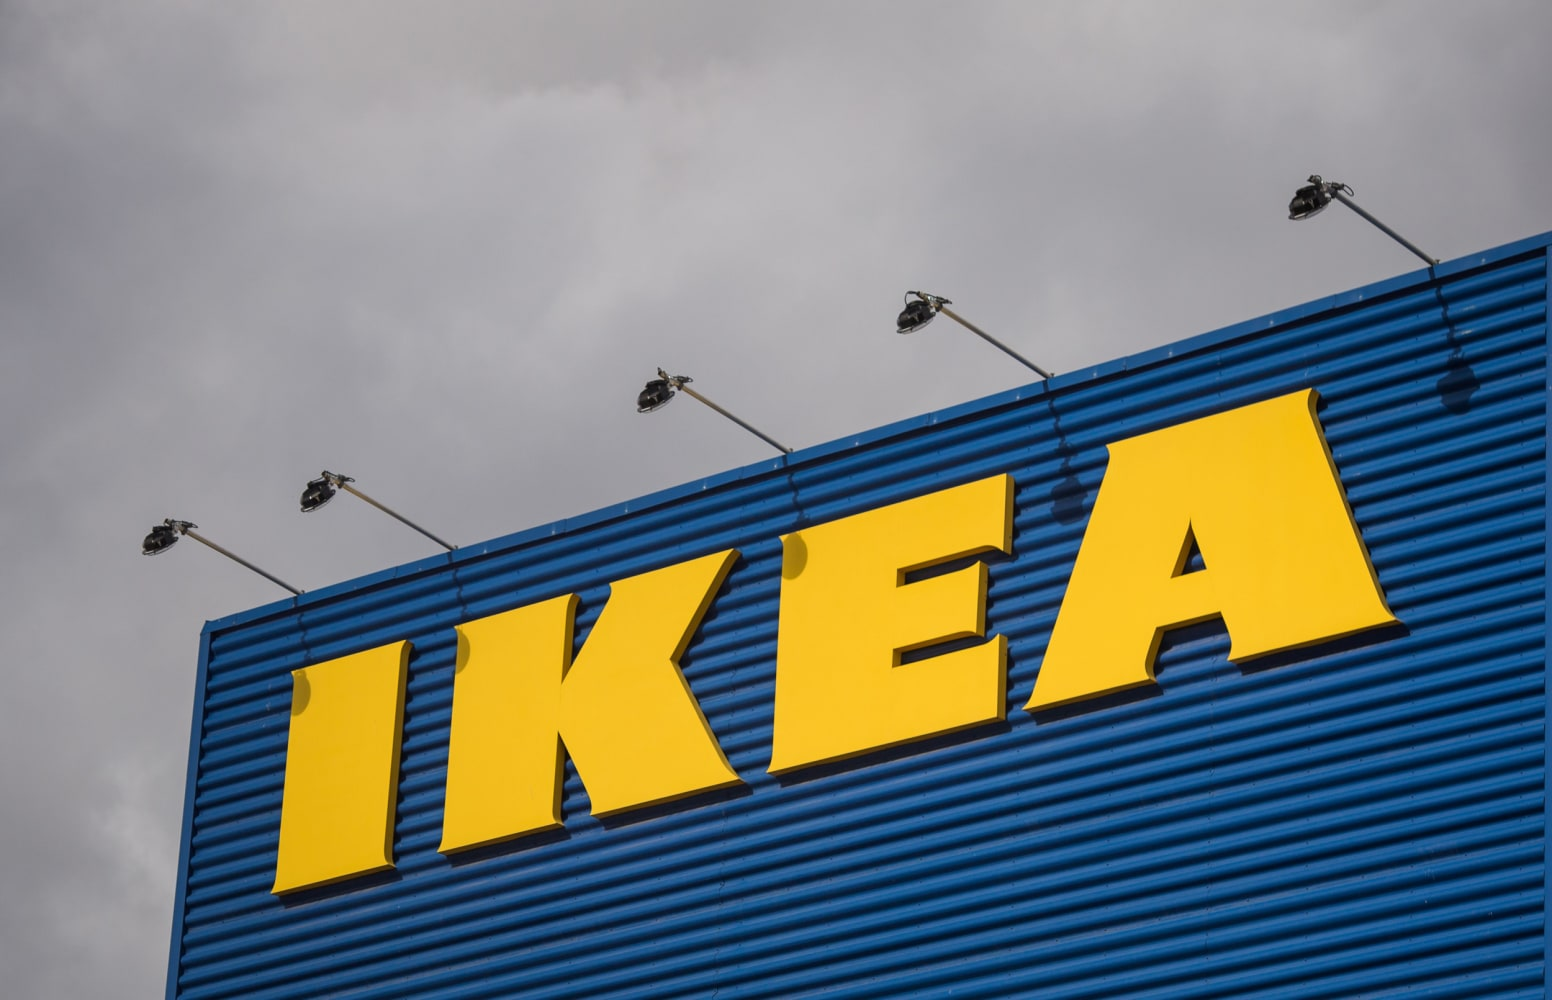 Ikea to pay $50M to families of toddlers killed by dressers